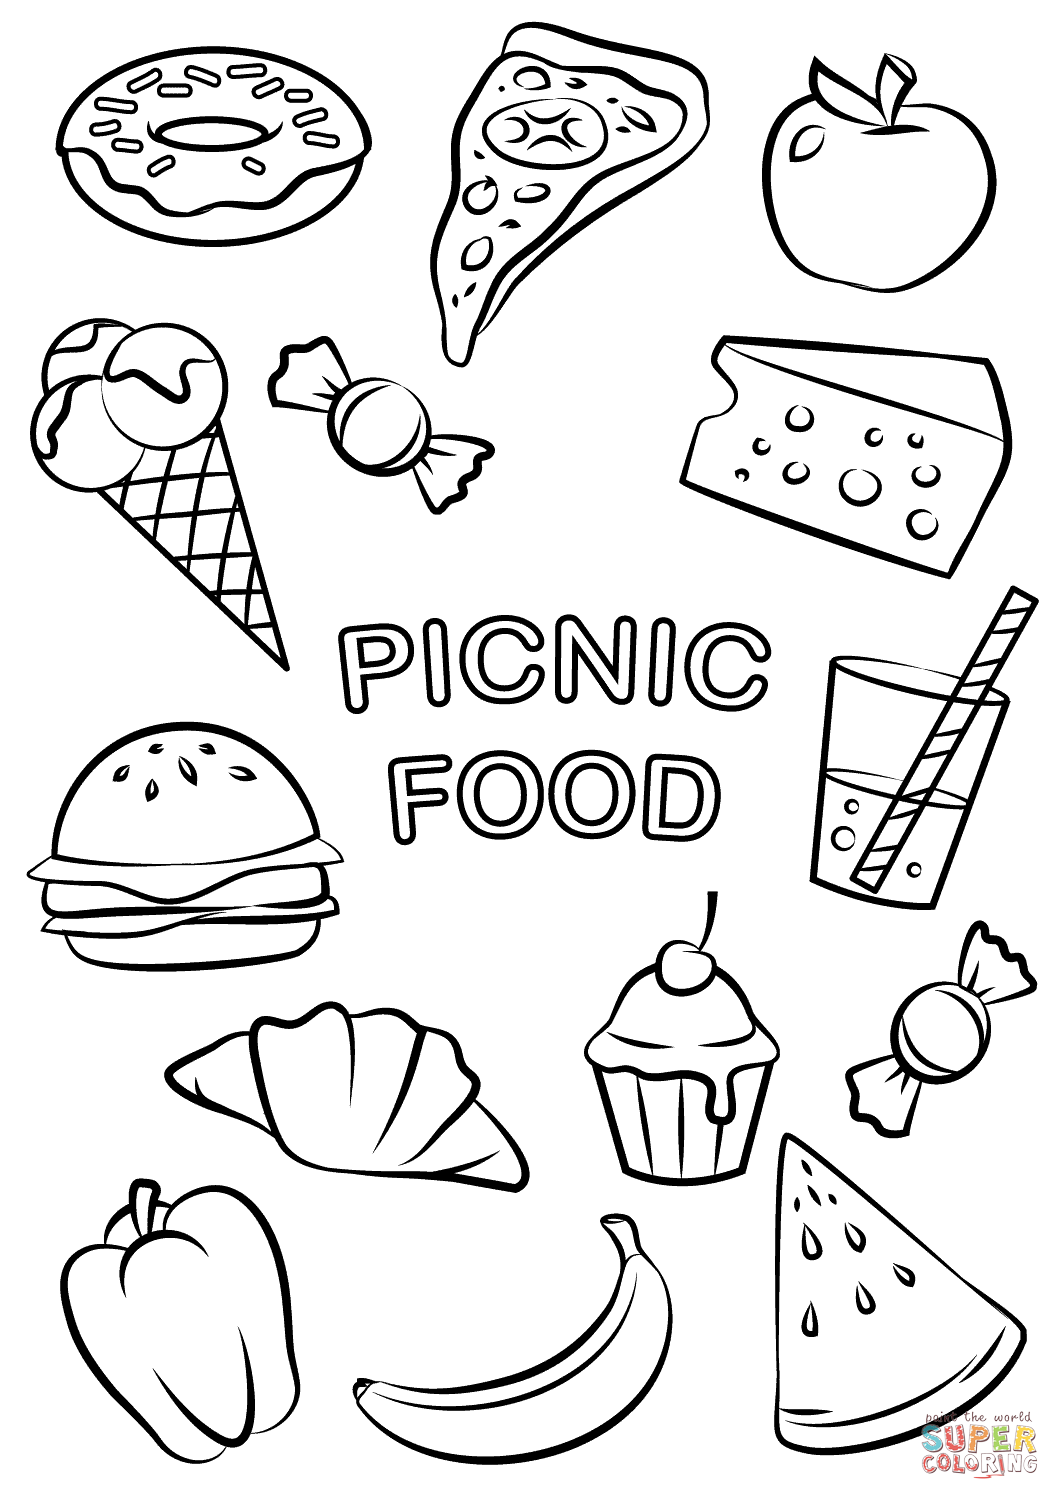 coloring picture of food picnic food coloring page free printable coloring pages picture food coloring of